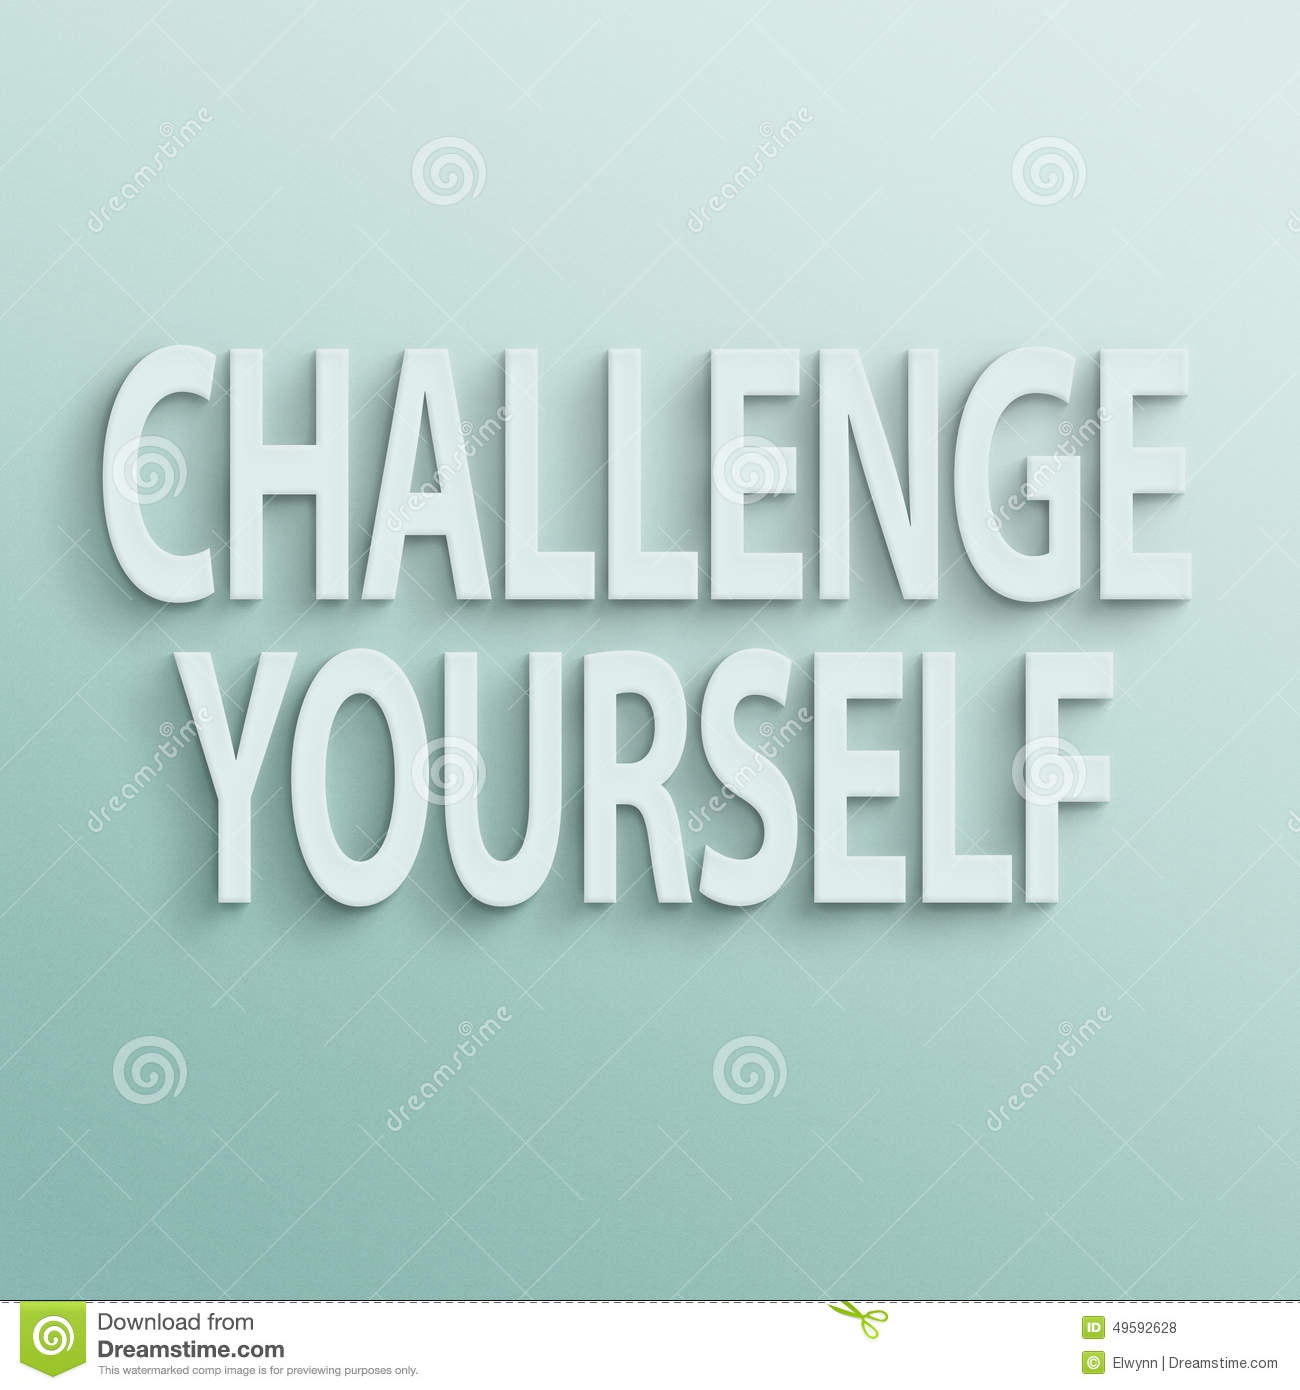 Challenge Yourself Stock Illustration - Image: 49592628